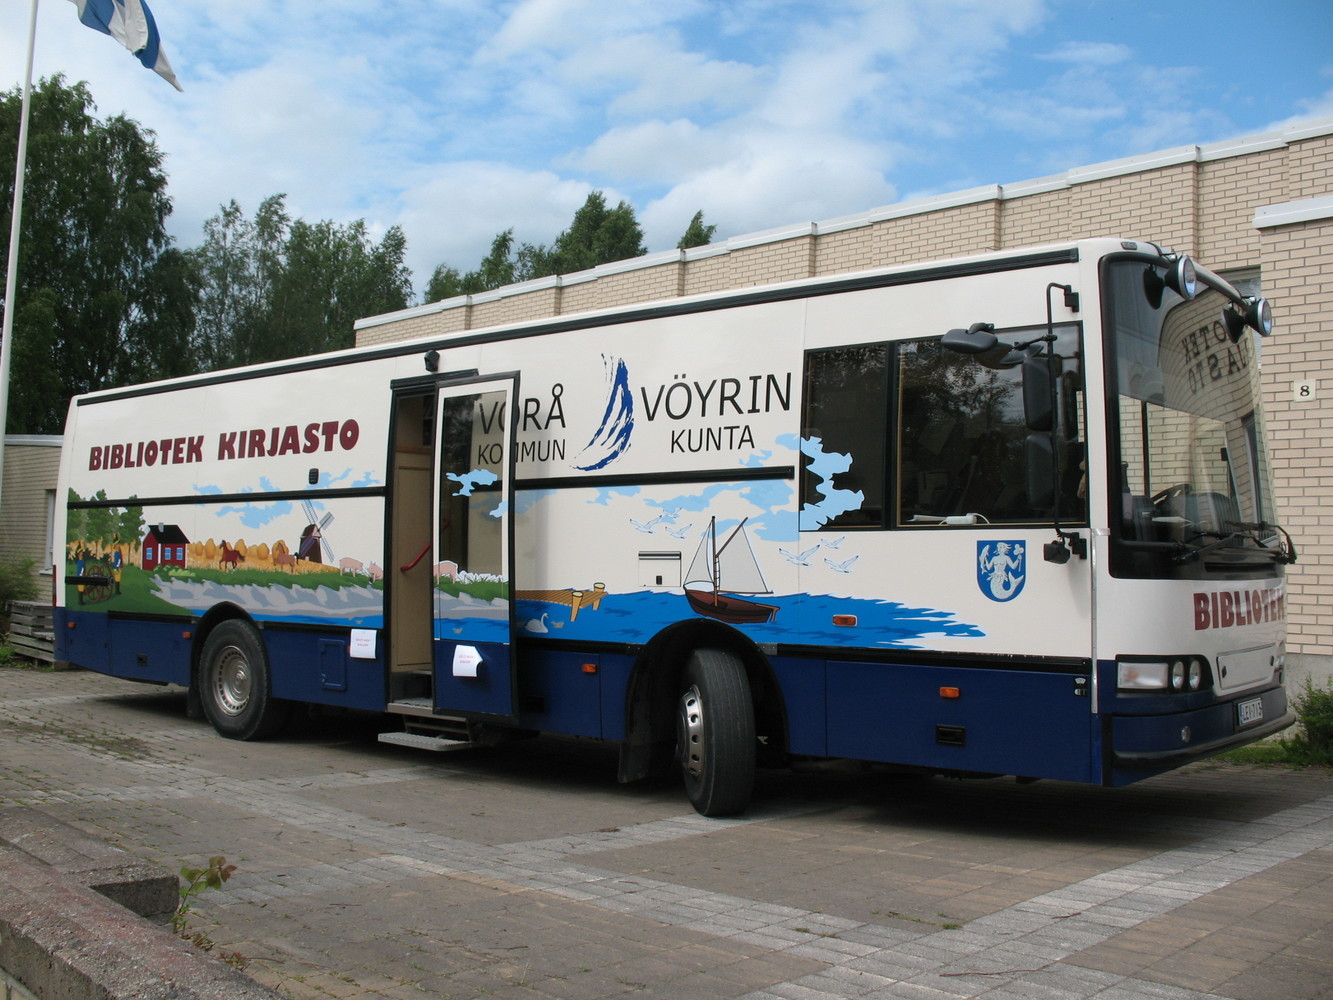 Vörå Library bus